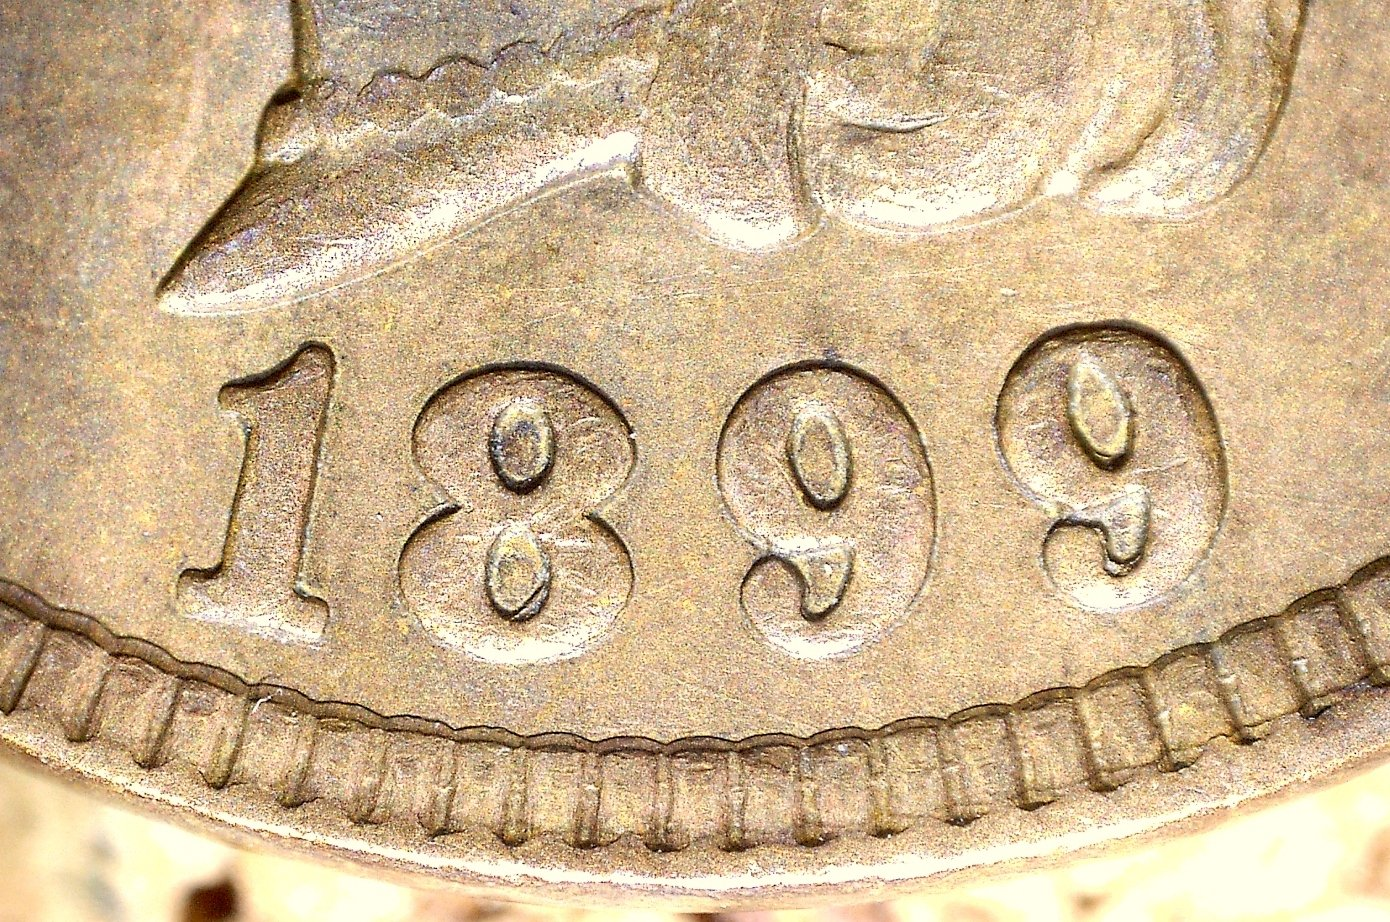 1899 RPD-013 - Indian Head Penny - Photo by David Killough